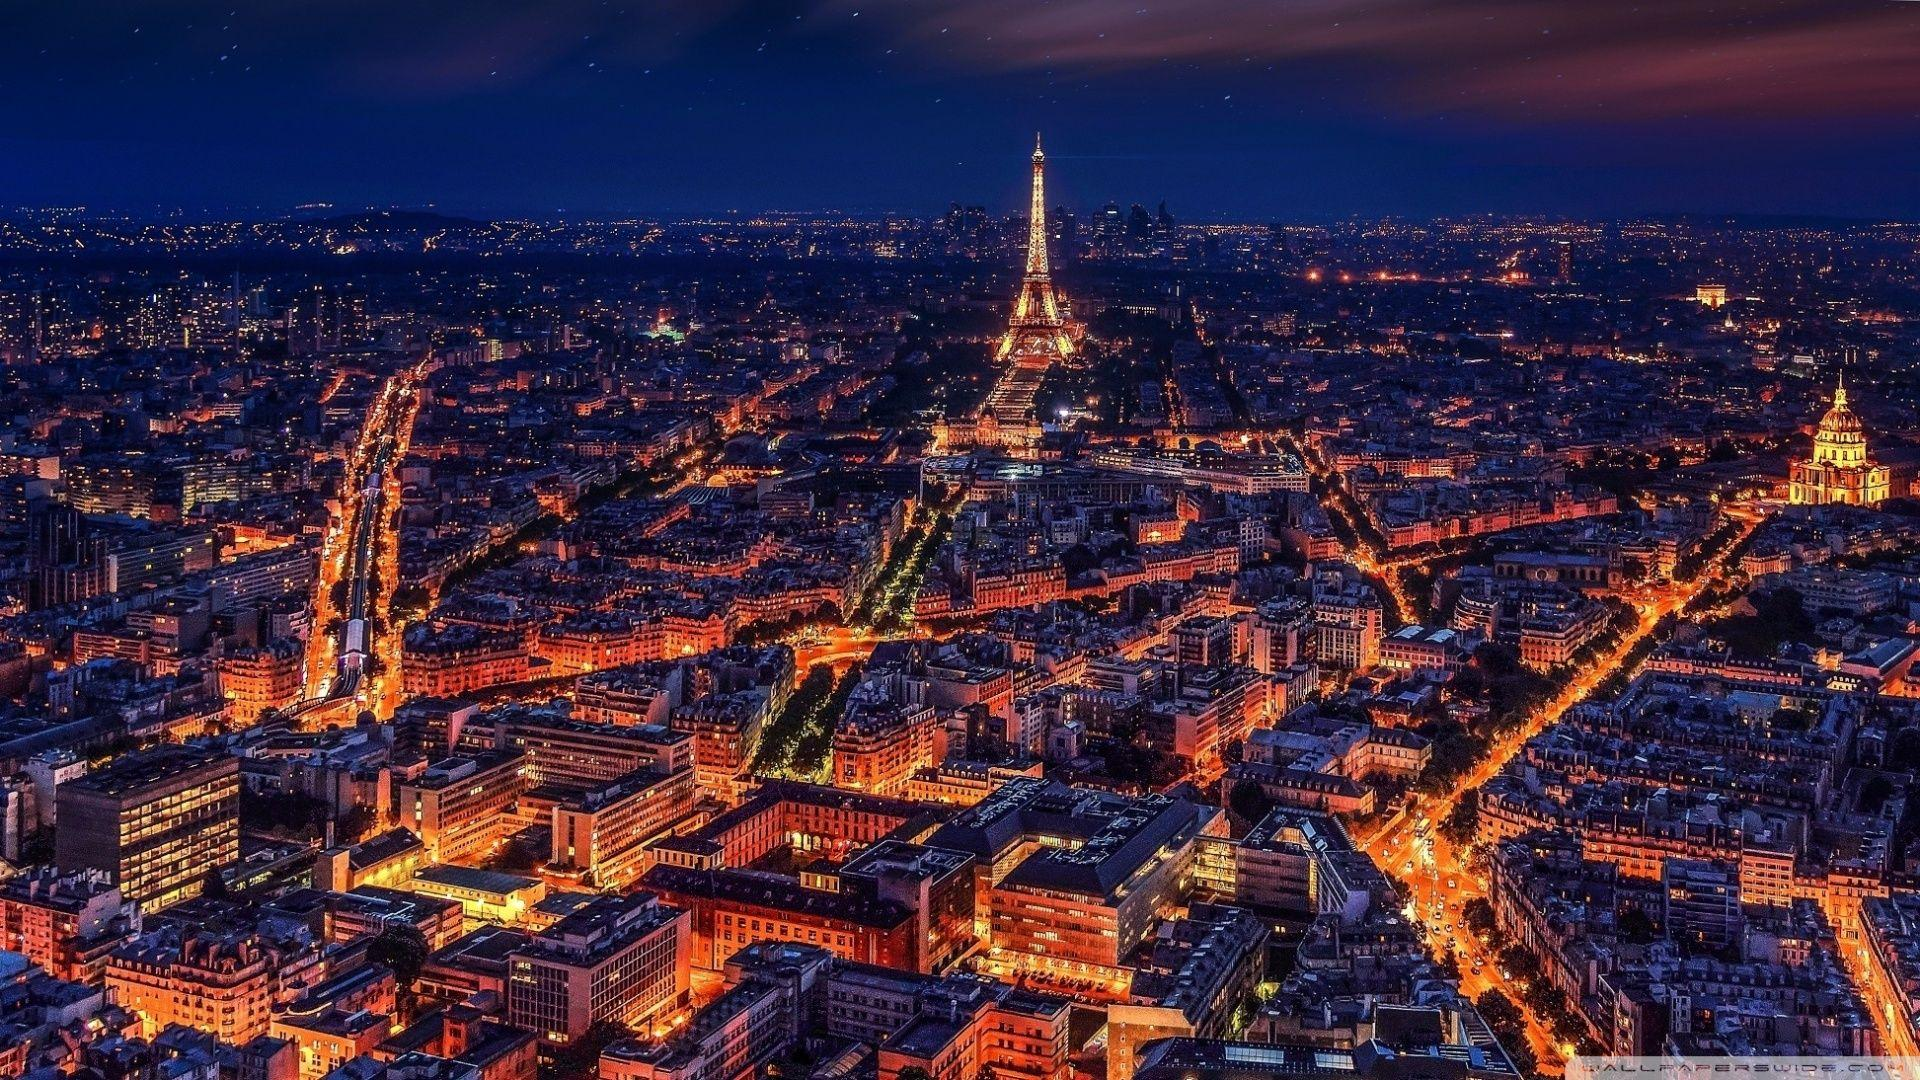 Paris Night Wallpapers Wallpaper Cave